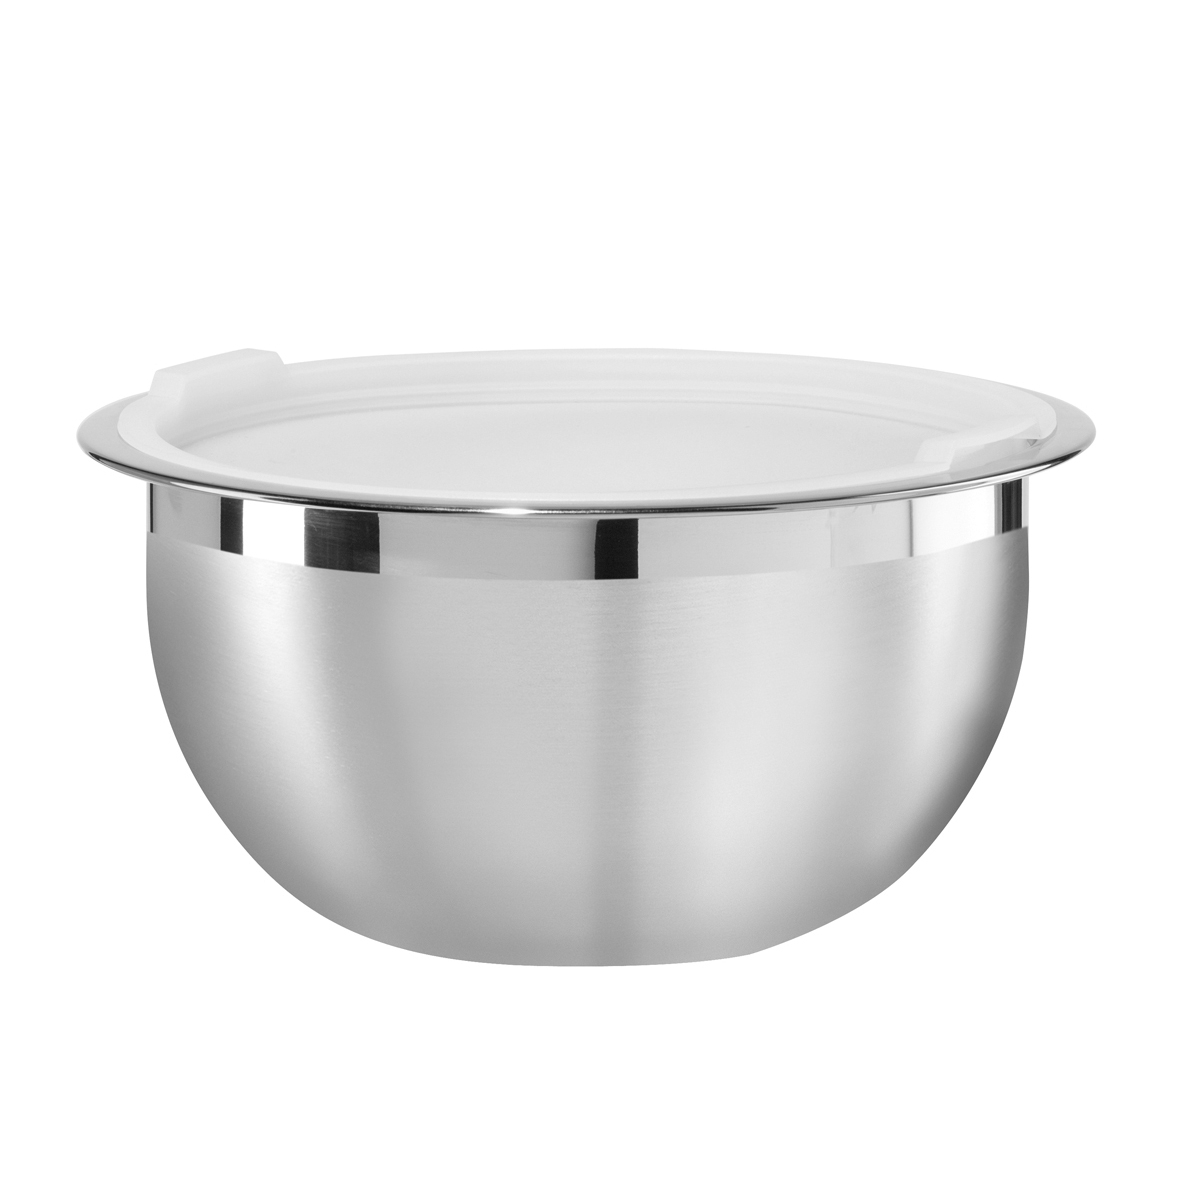 Oggi Stainless Steel 3 Quart Mixing Bowl with Polypropylene Lid